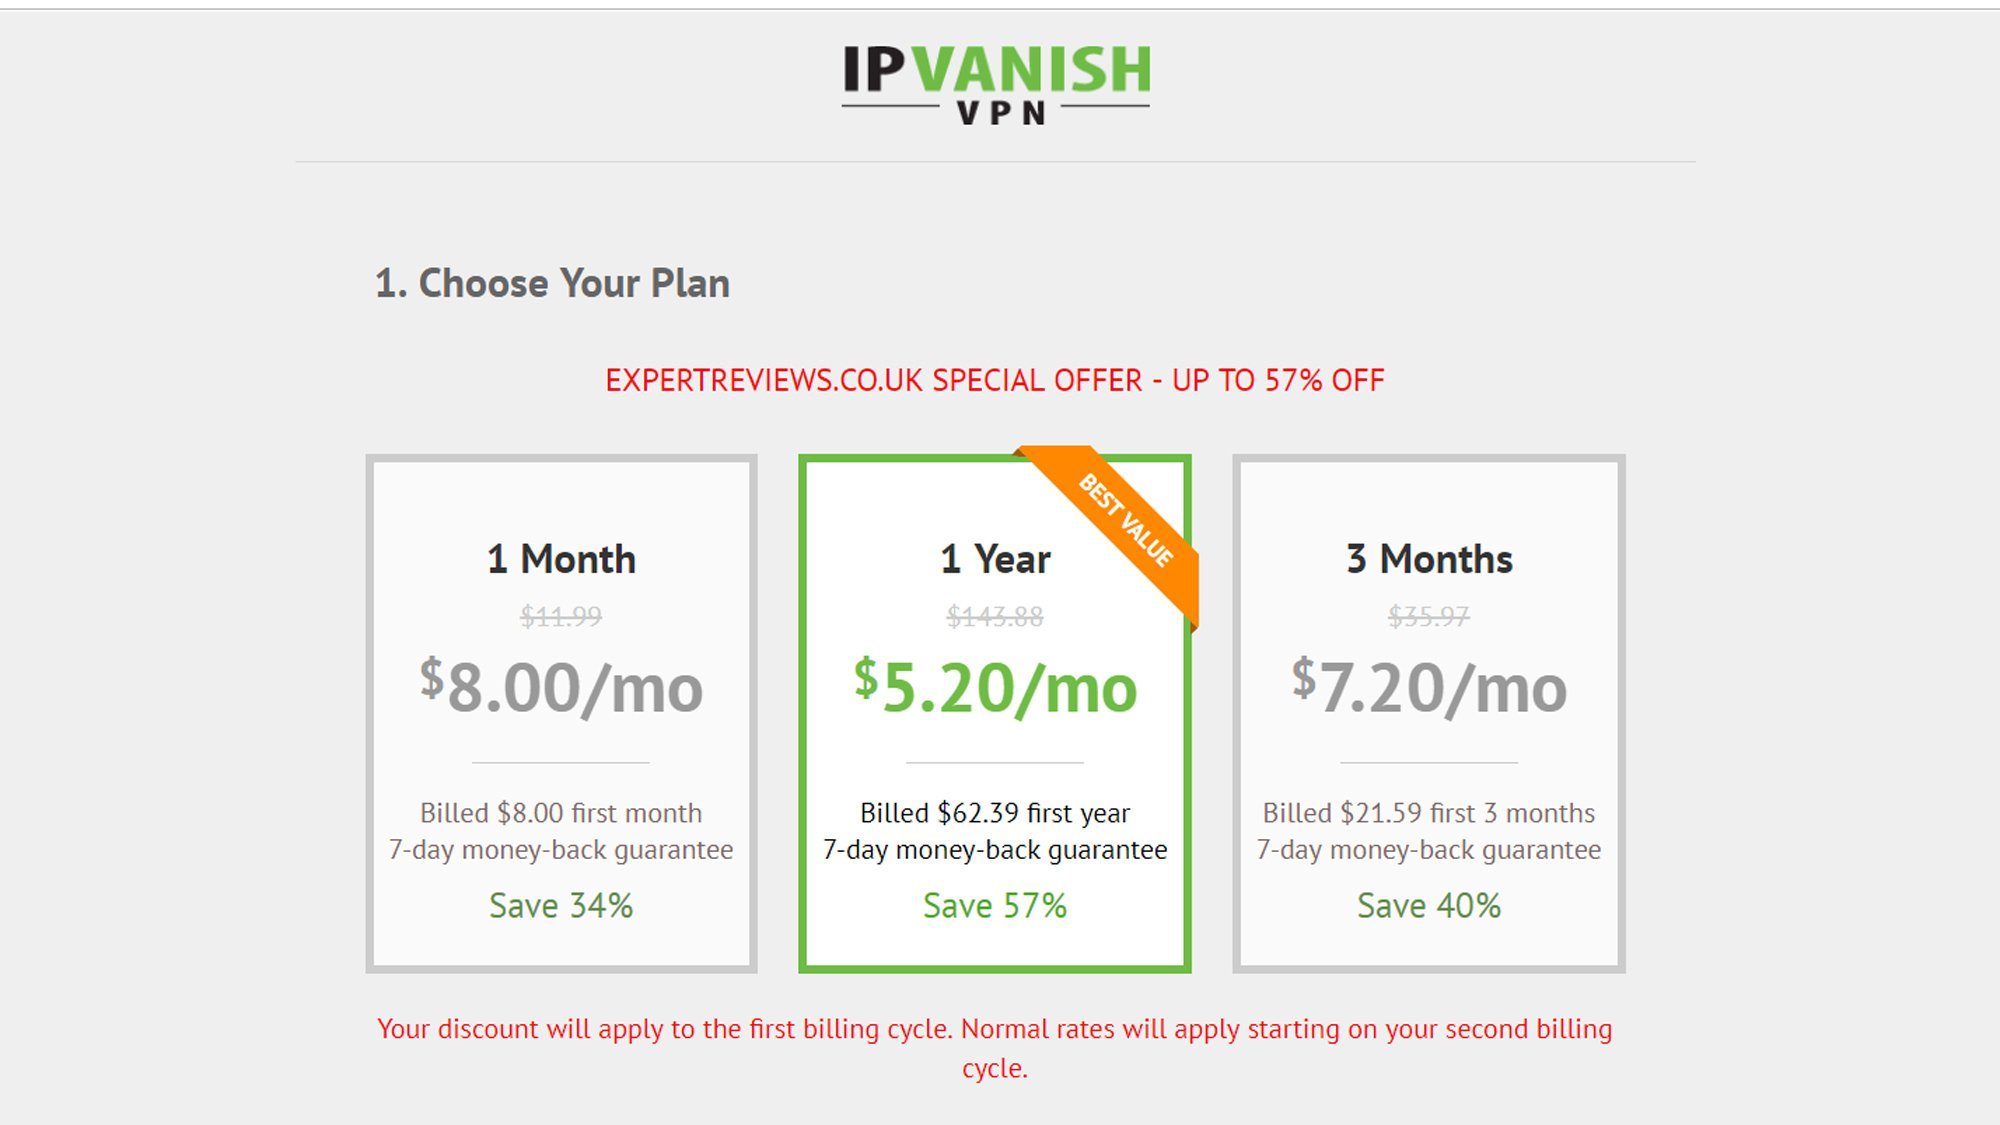 Best Affordable VPN Ip Vanish For Students